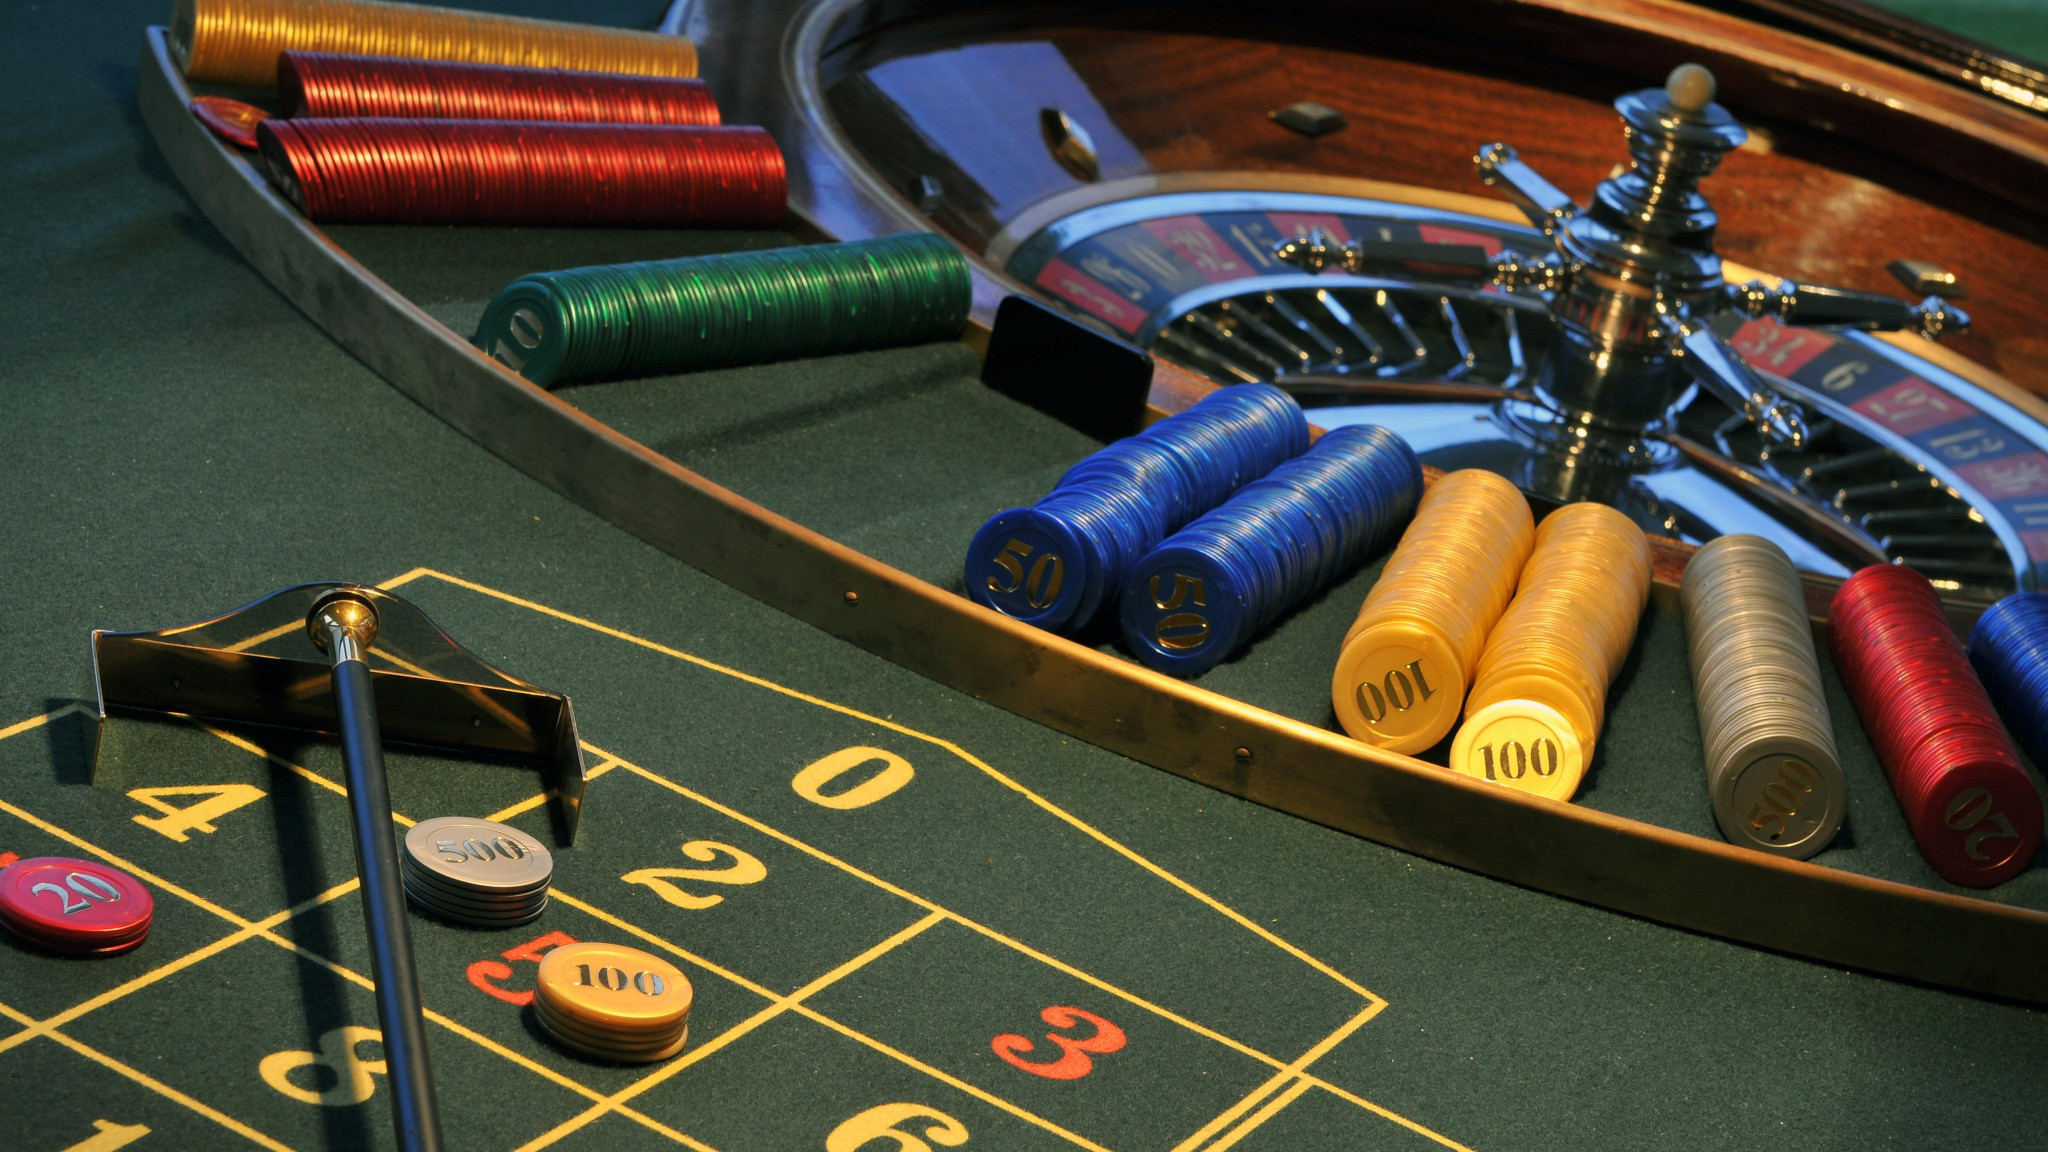 MJ368 is one of the sites online gambling (judi online) that offers you multiple options